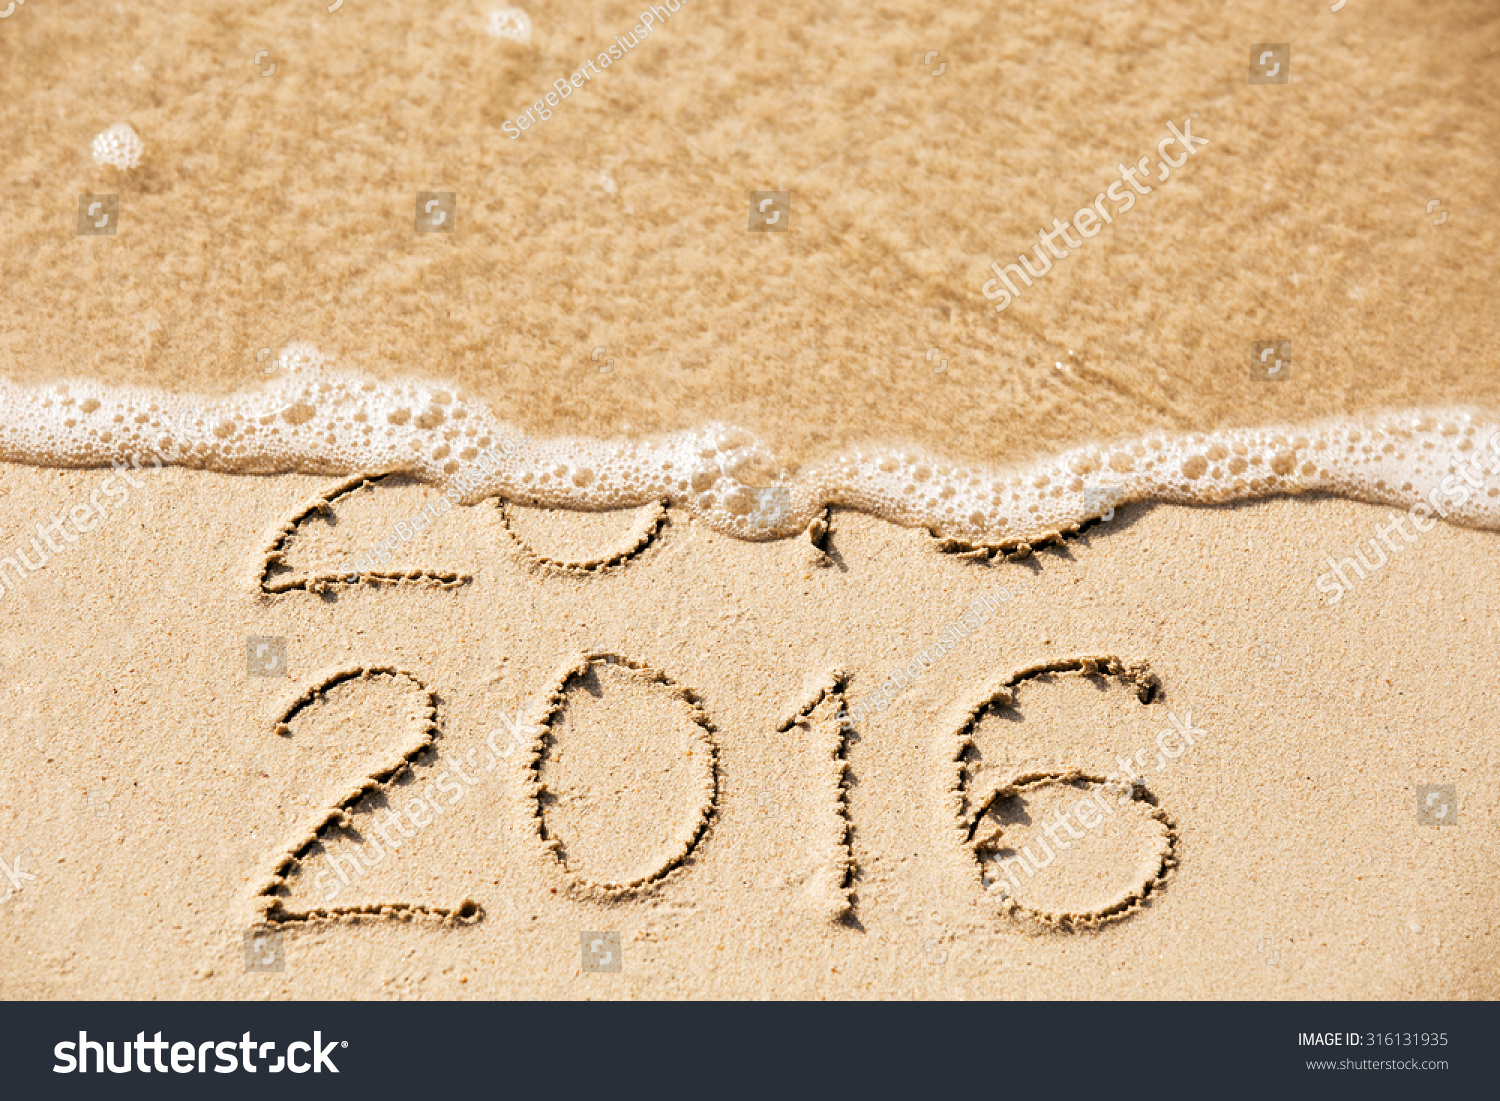 2015 2016 inscription written in the wet yellow beach sand being washed with sea water wave. Concept of celebrating the New Year at some exotic place #316131935